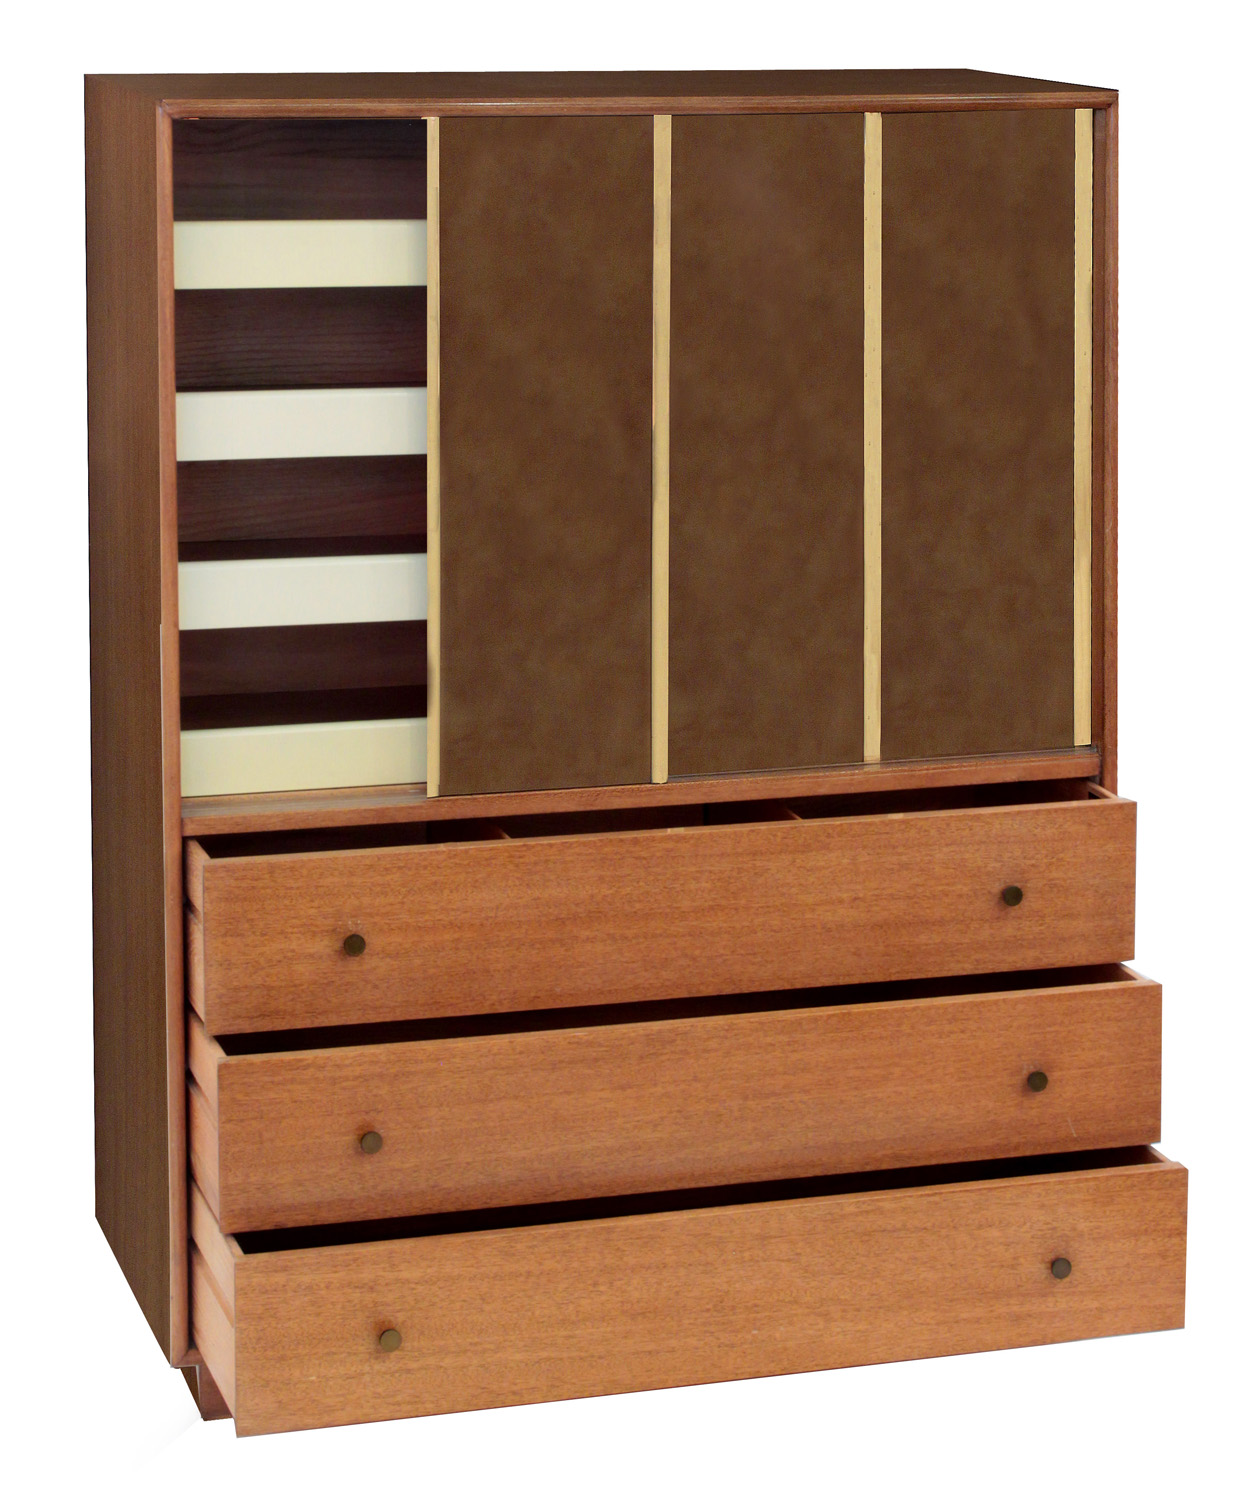 Probber 150 highboy mahg+lthr+brss 2x chestofdrawers136 detail2 hires.jpg